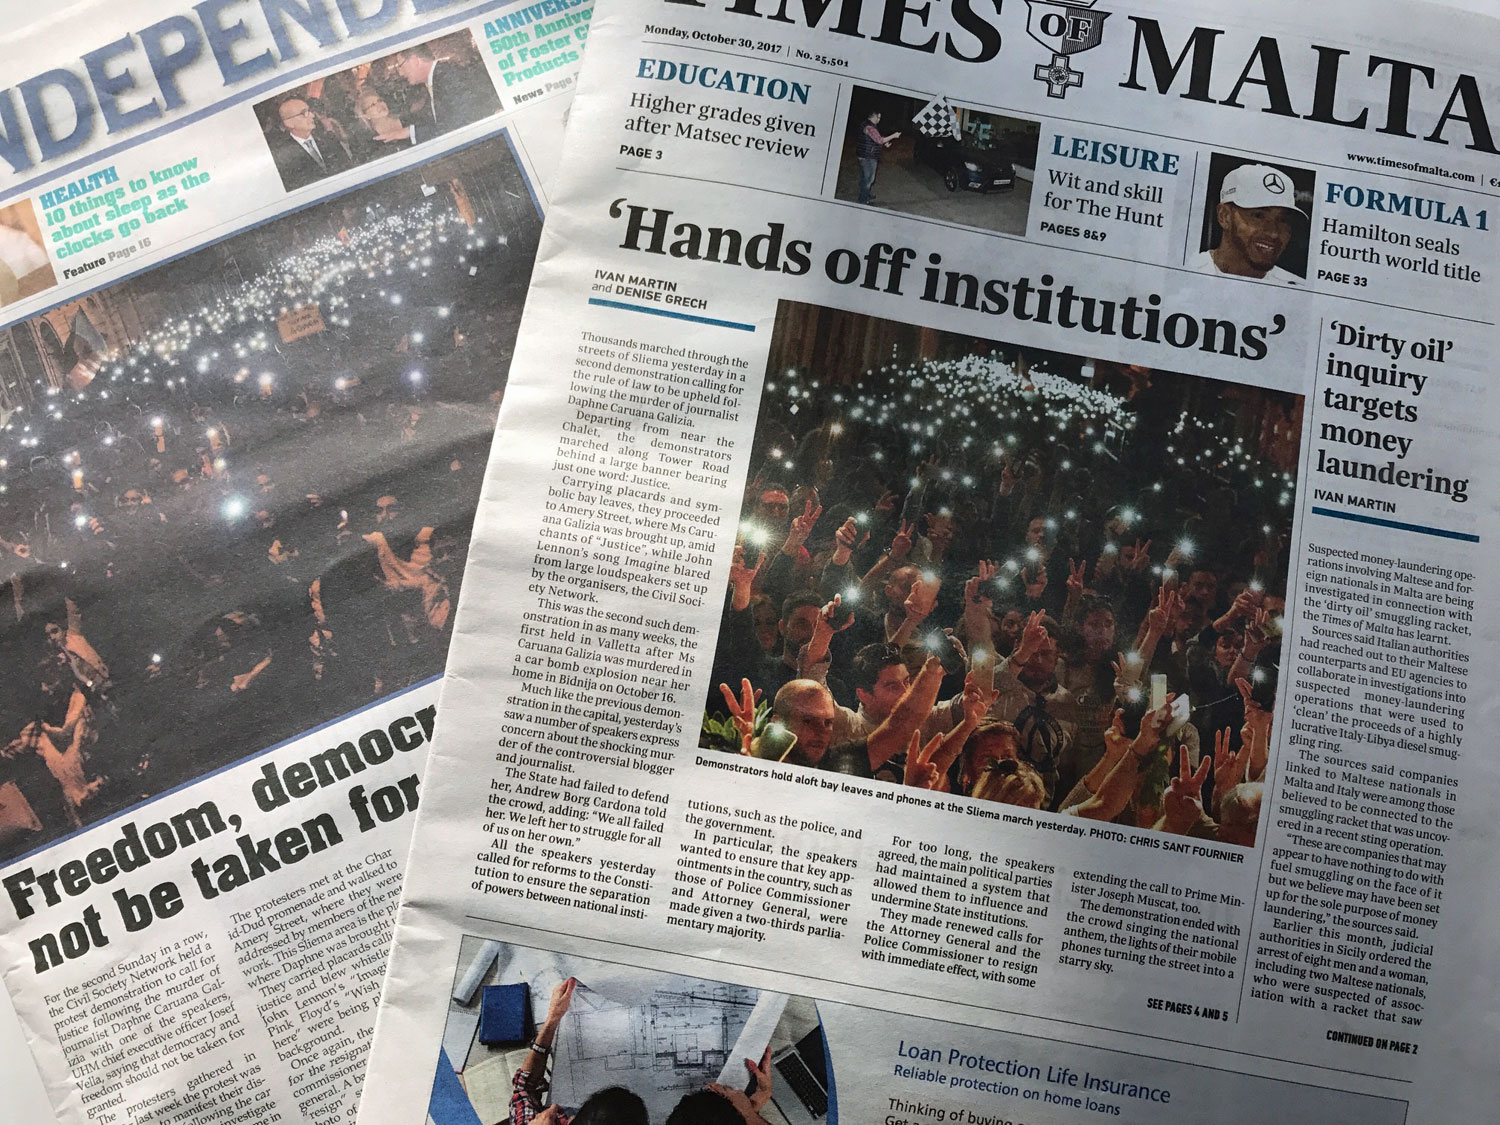 La presse maltaise pointe du doigt les institutions.